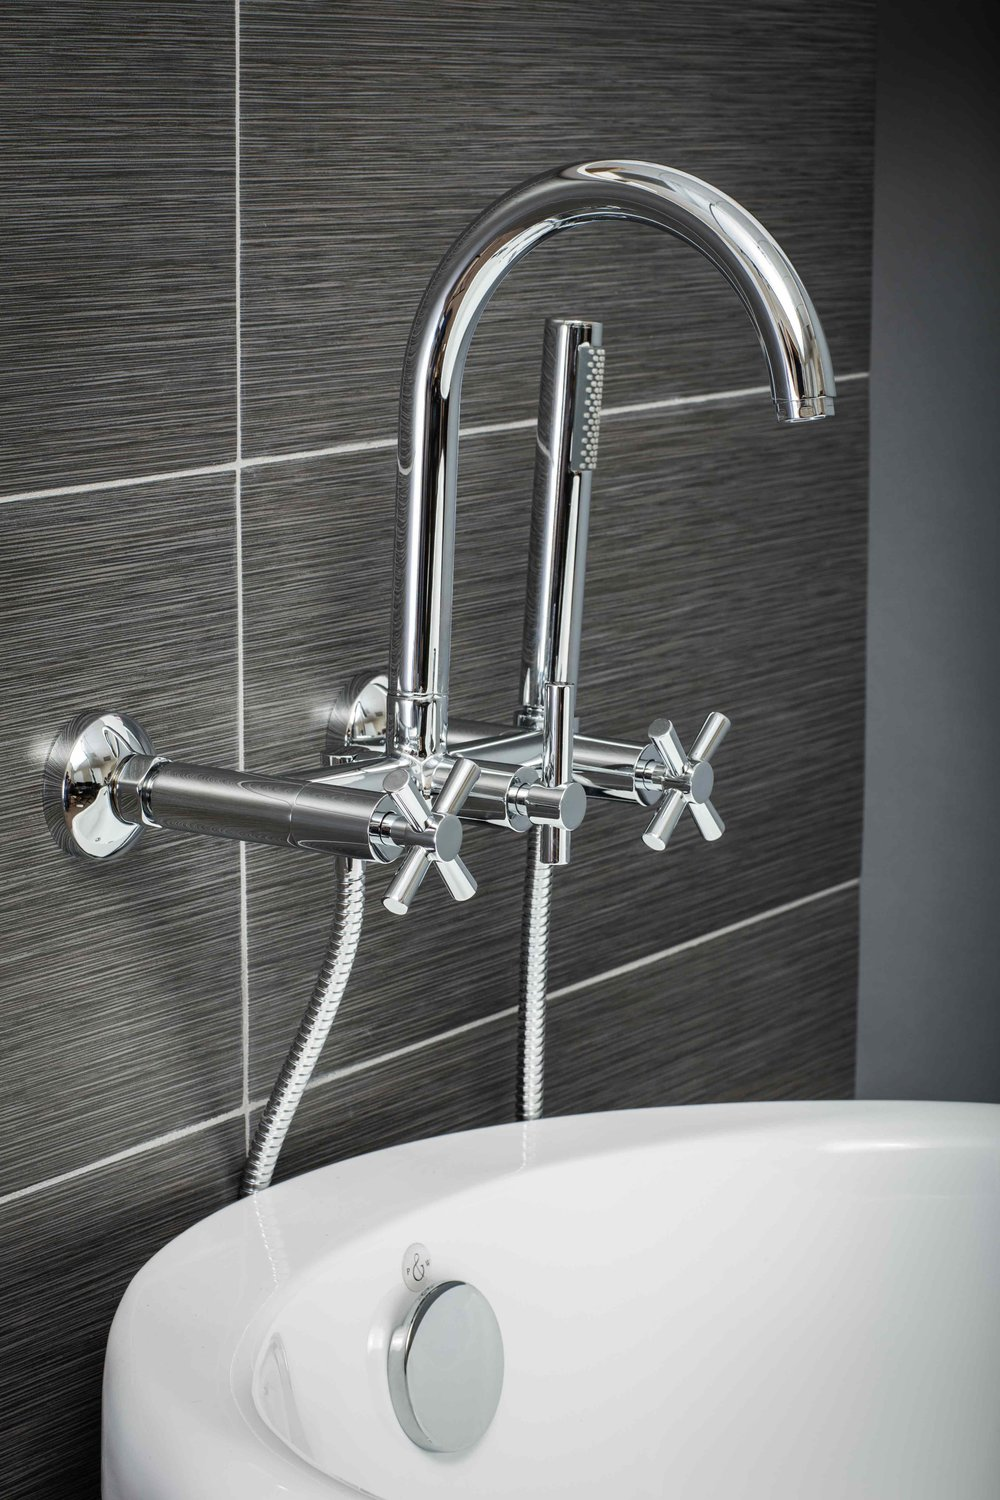 Contemporary Wall Mount Tub Filler Faucet in Chrome with Cross ...